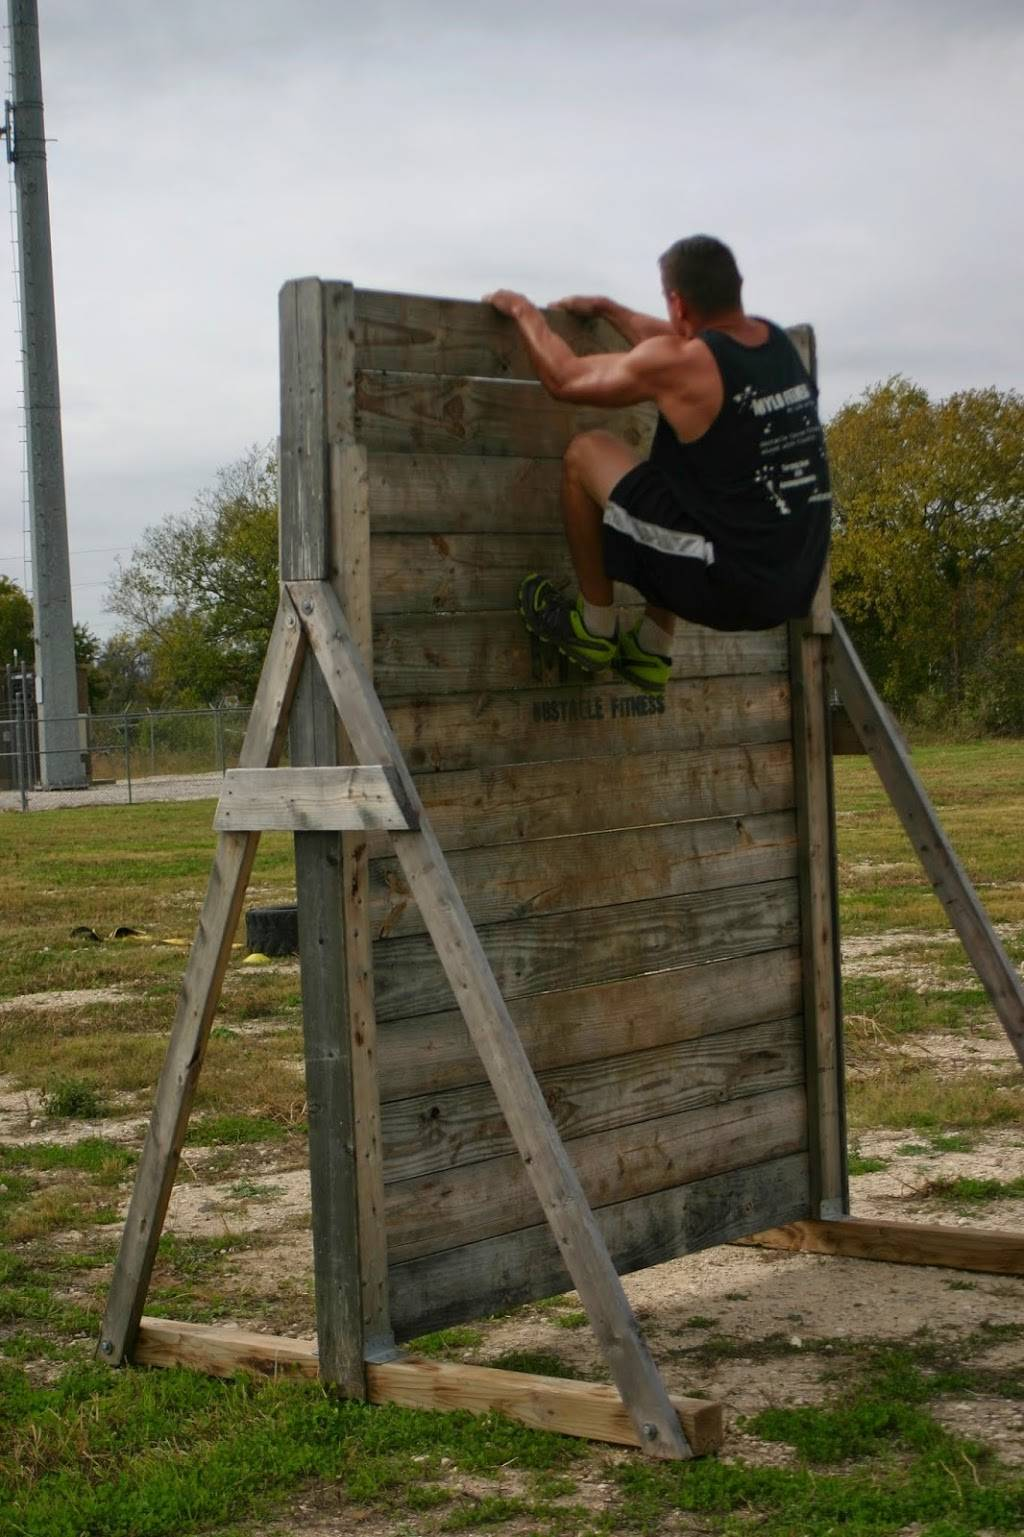 MYLO Obstacle Fitness - gym  | Photo 4 of 9 | Address: 12925 Lowden Ln bldg a, Manchaca, TX 78652, USA | Phone: (512) 386-7405